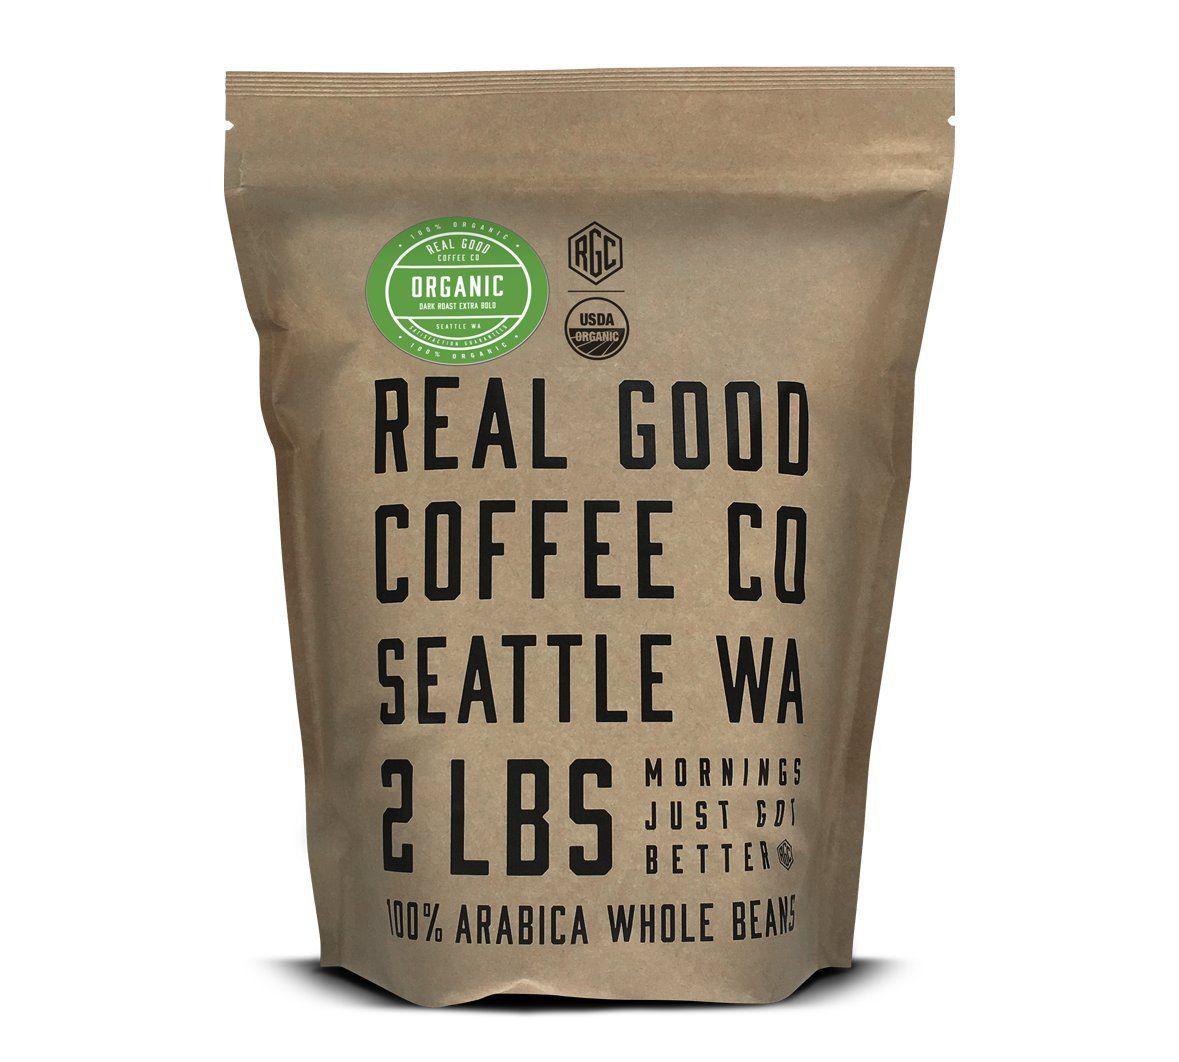 Real Good Coffee Co.